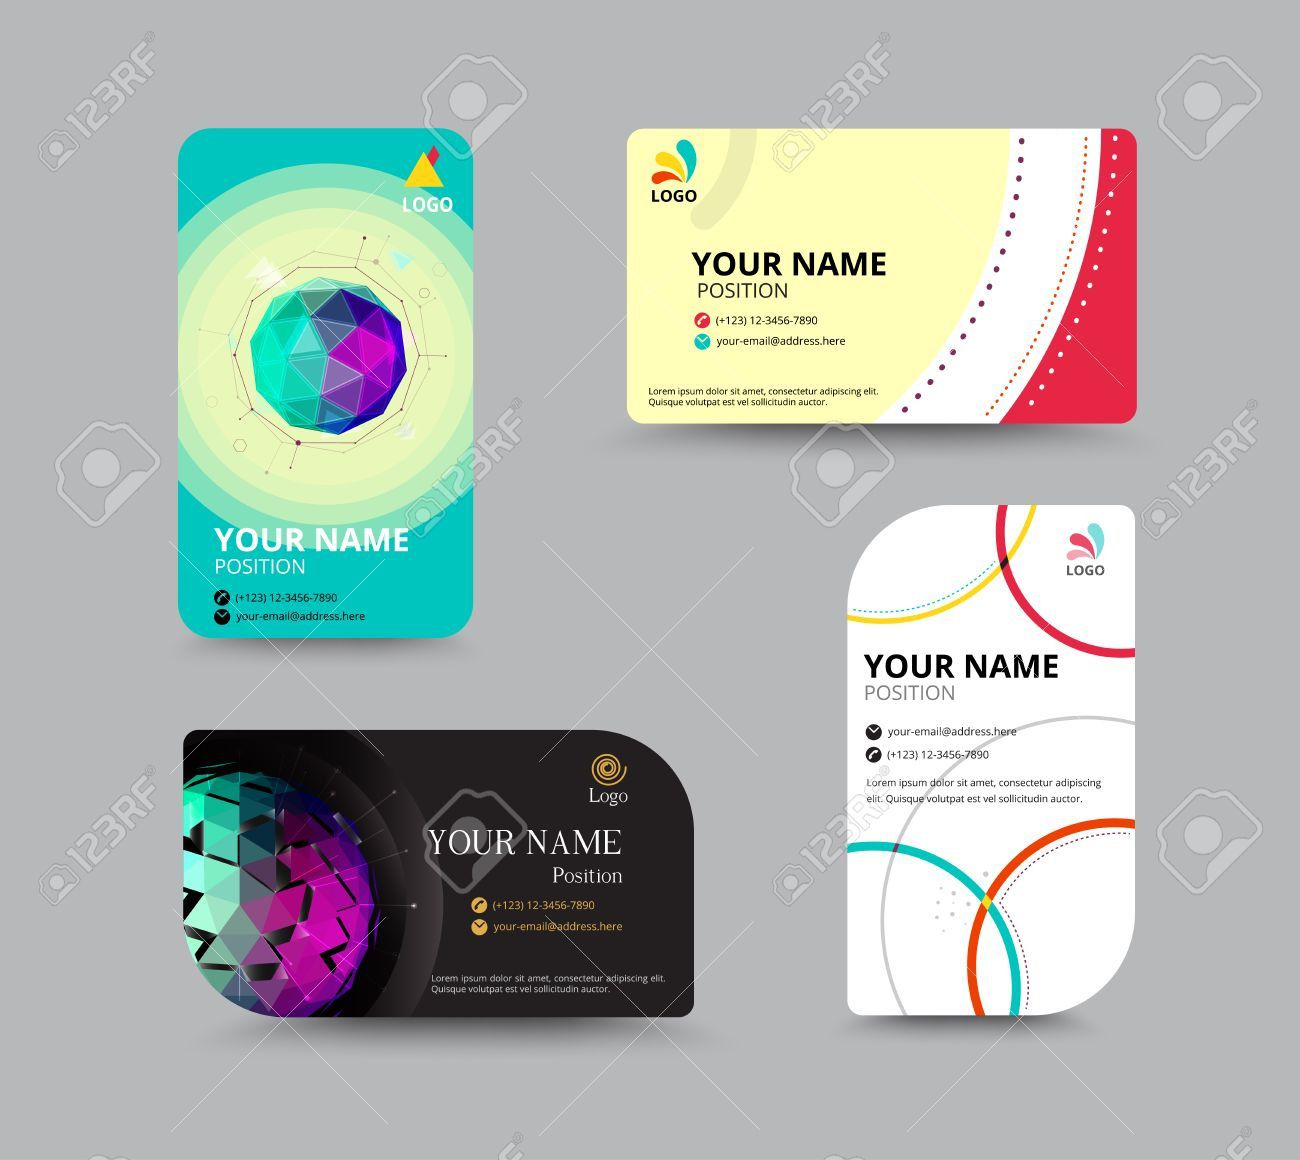 000 Fascinating Name Tag Design Template High Def  Free Download PsdFull